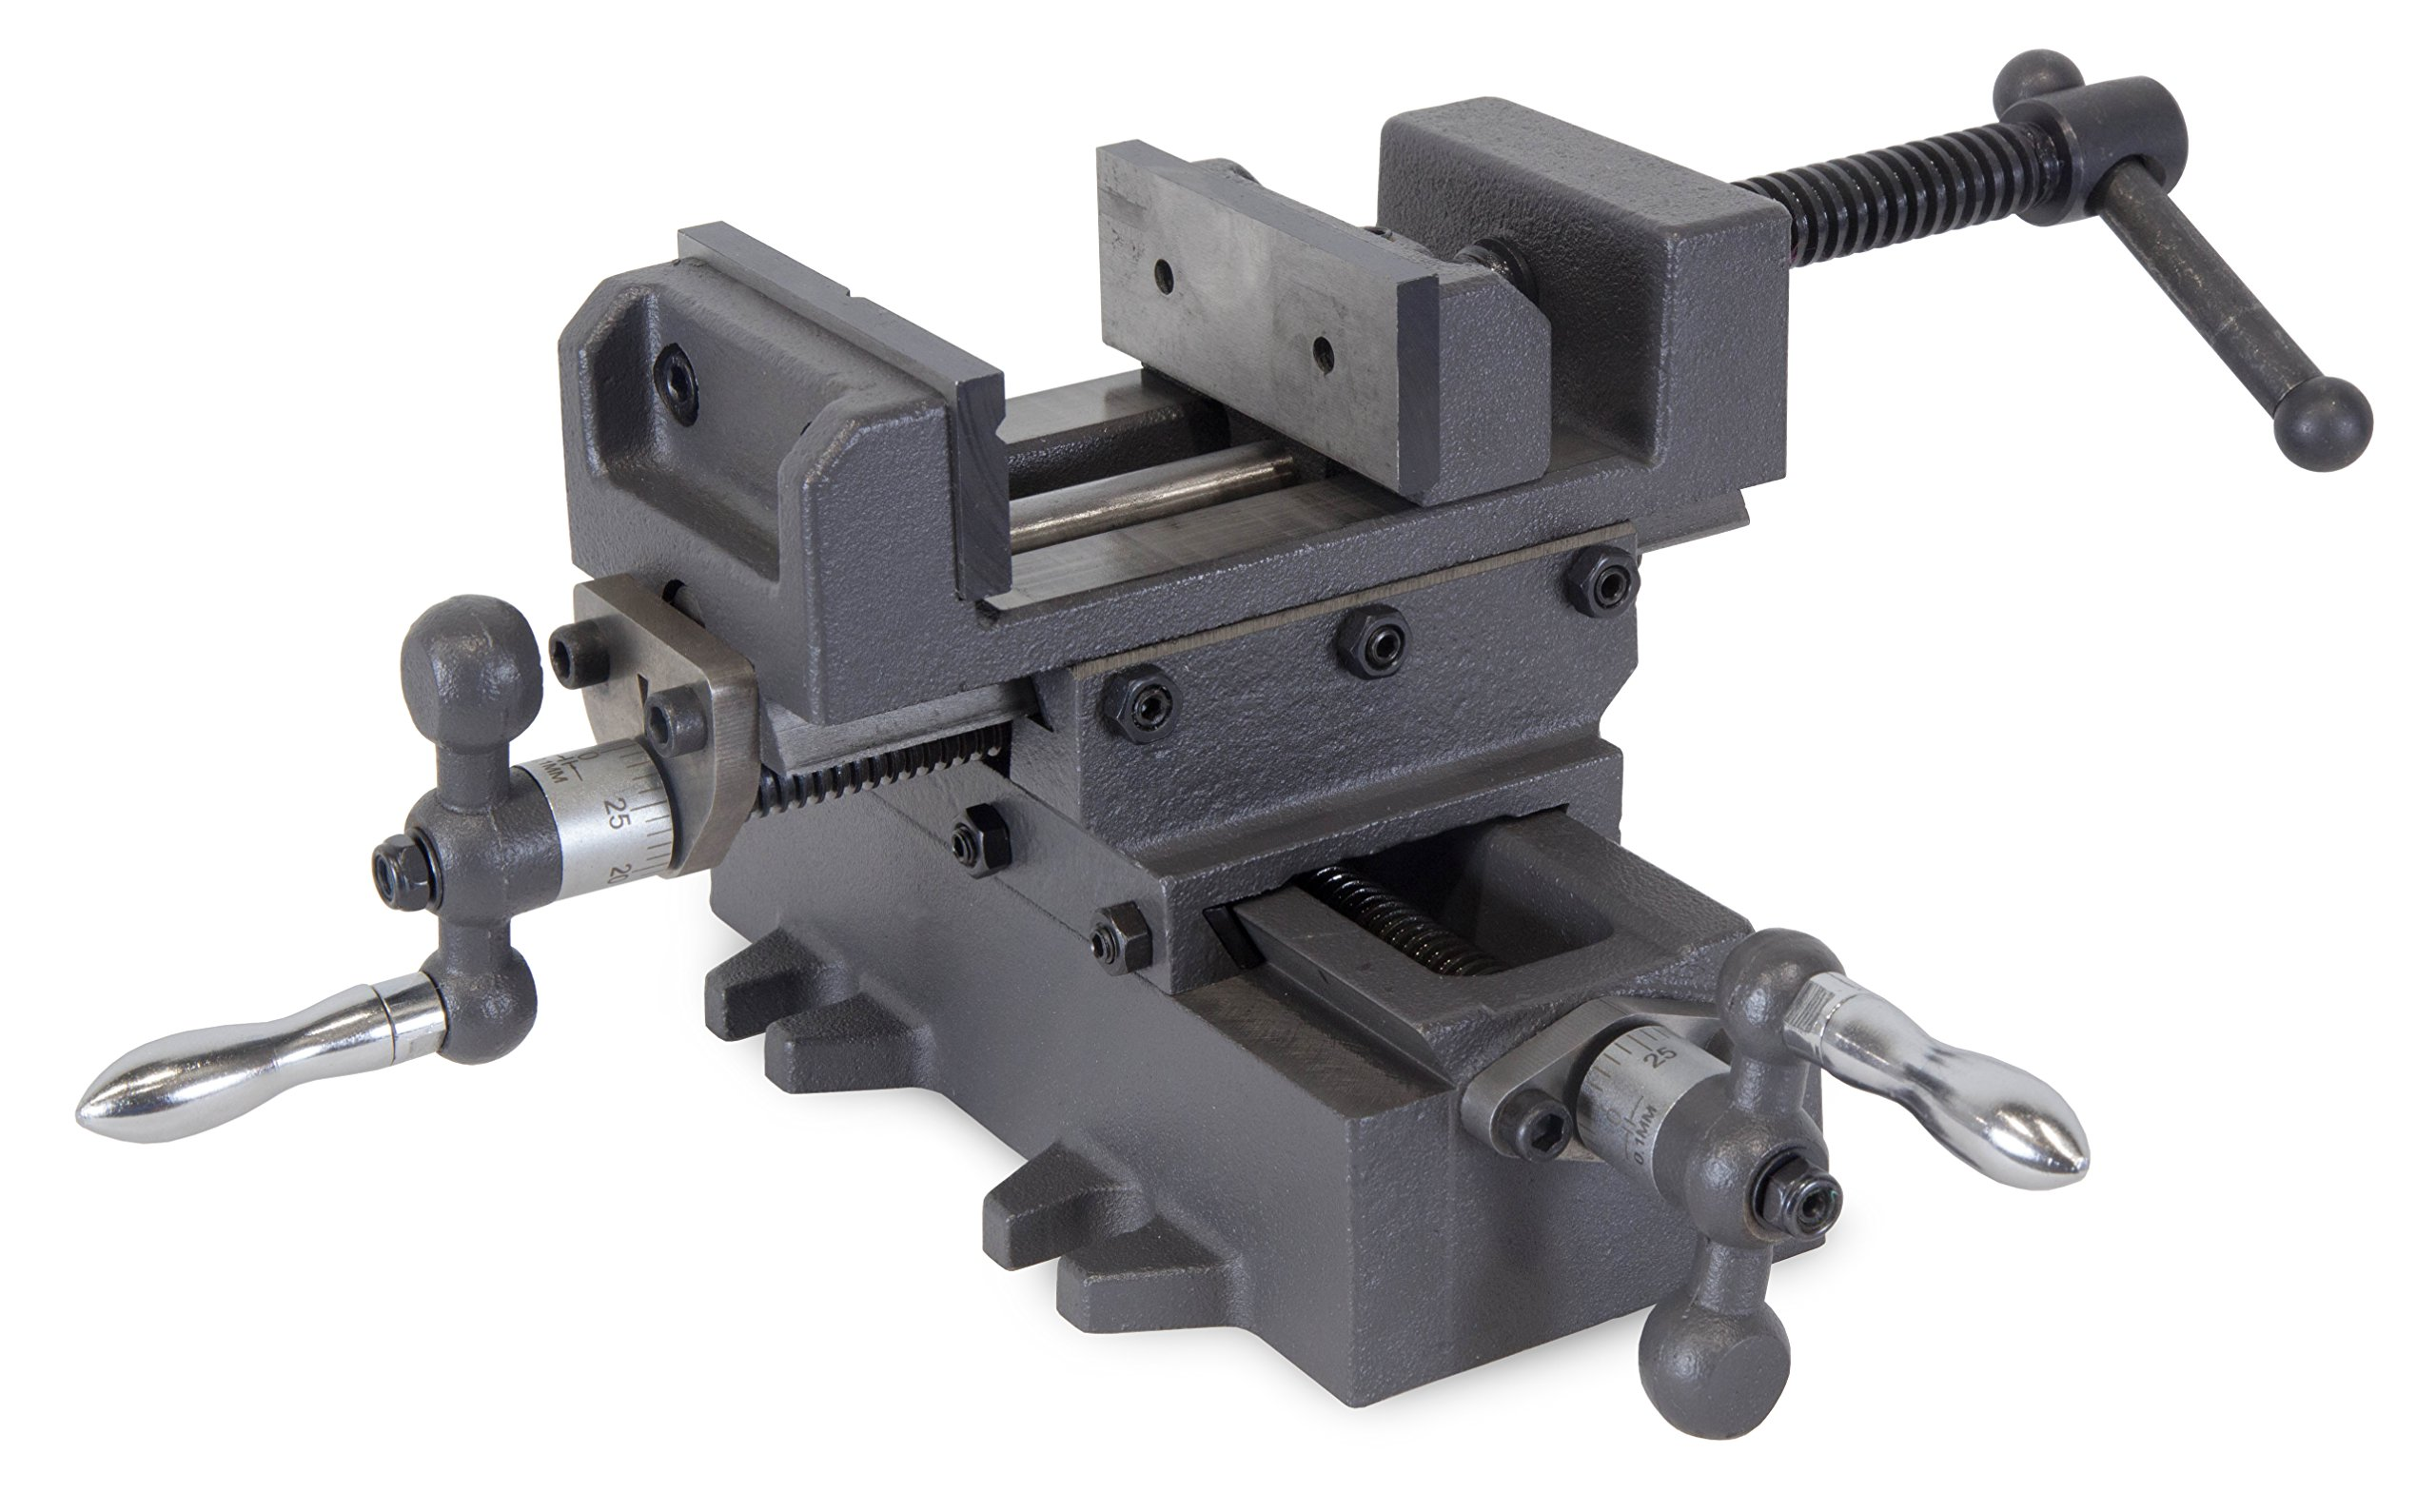 WEN 413CV 3.25'' Compound Cross Slide Industrial Strength Benchtop and Drill Press Vise